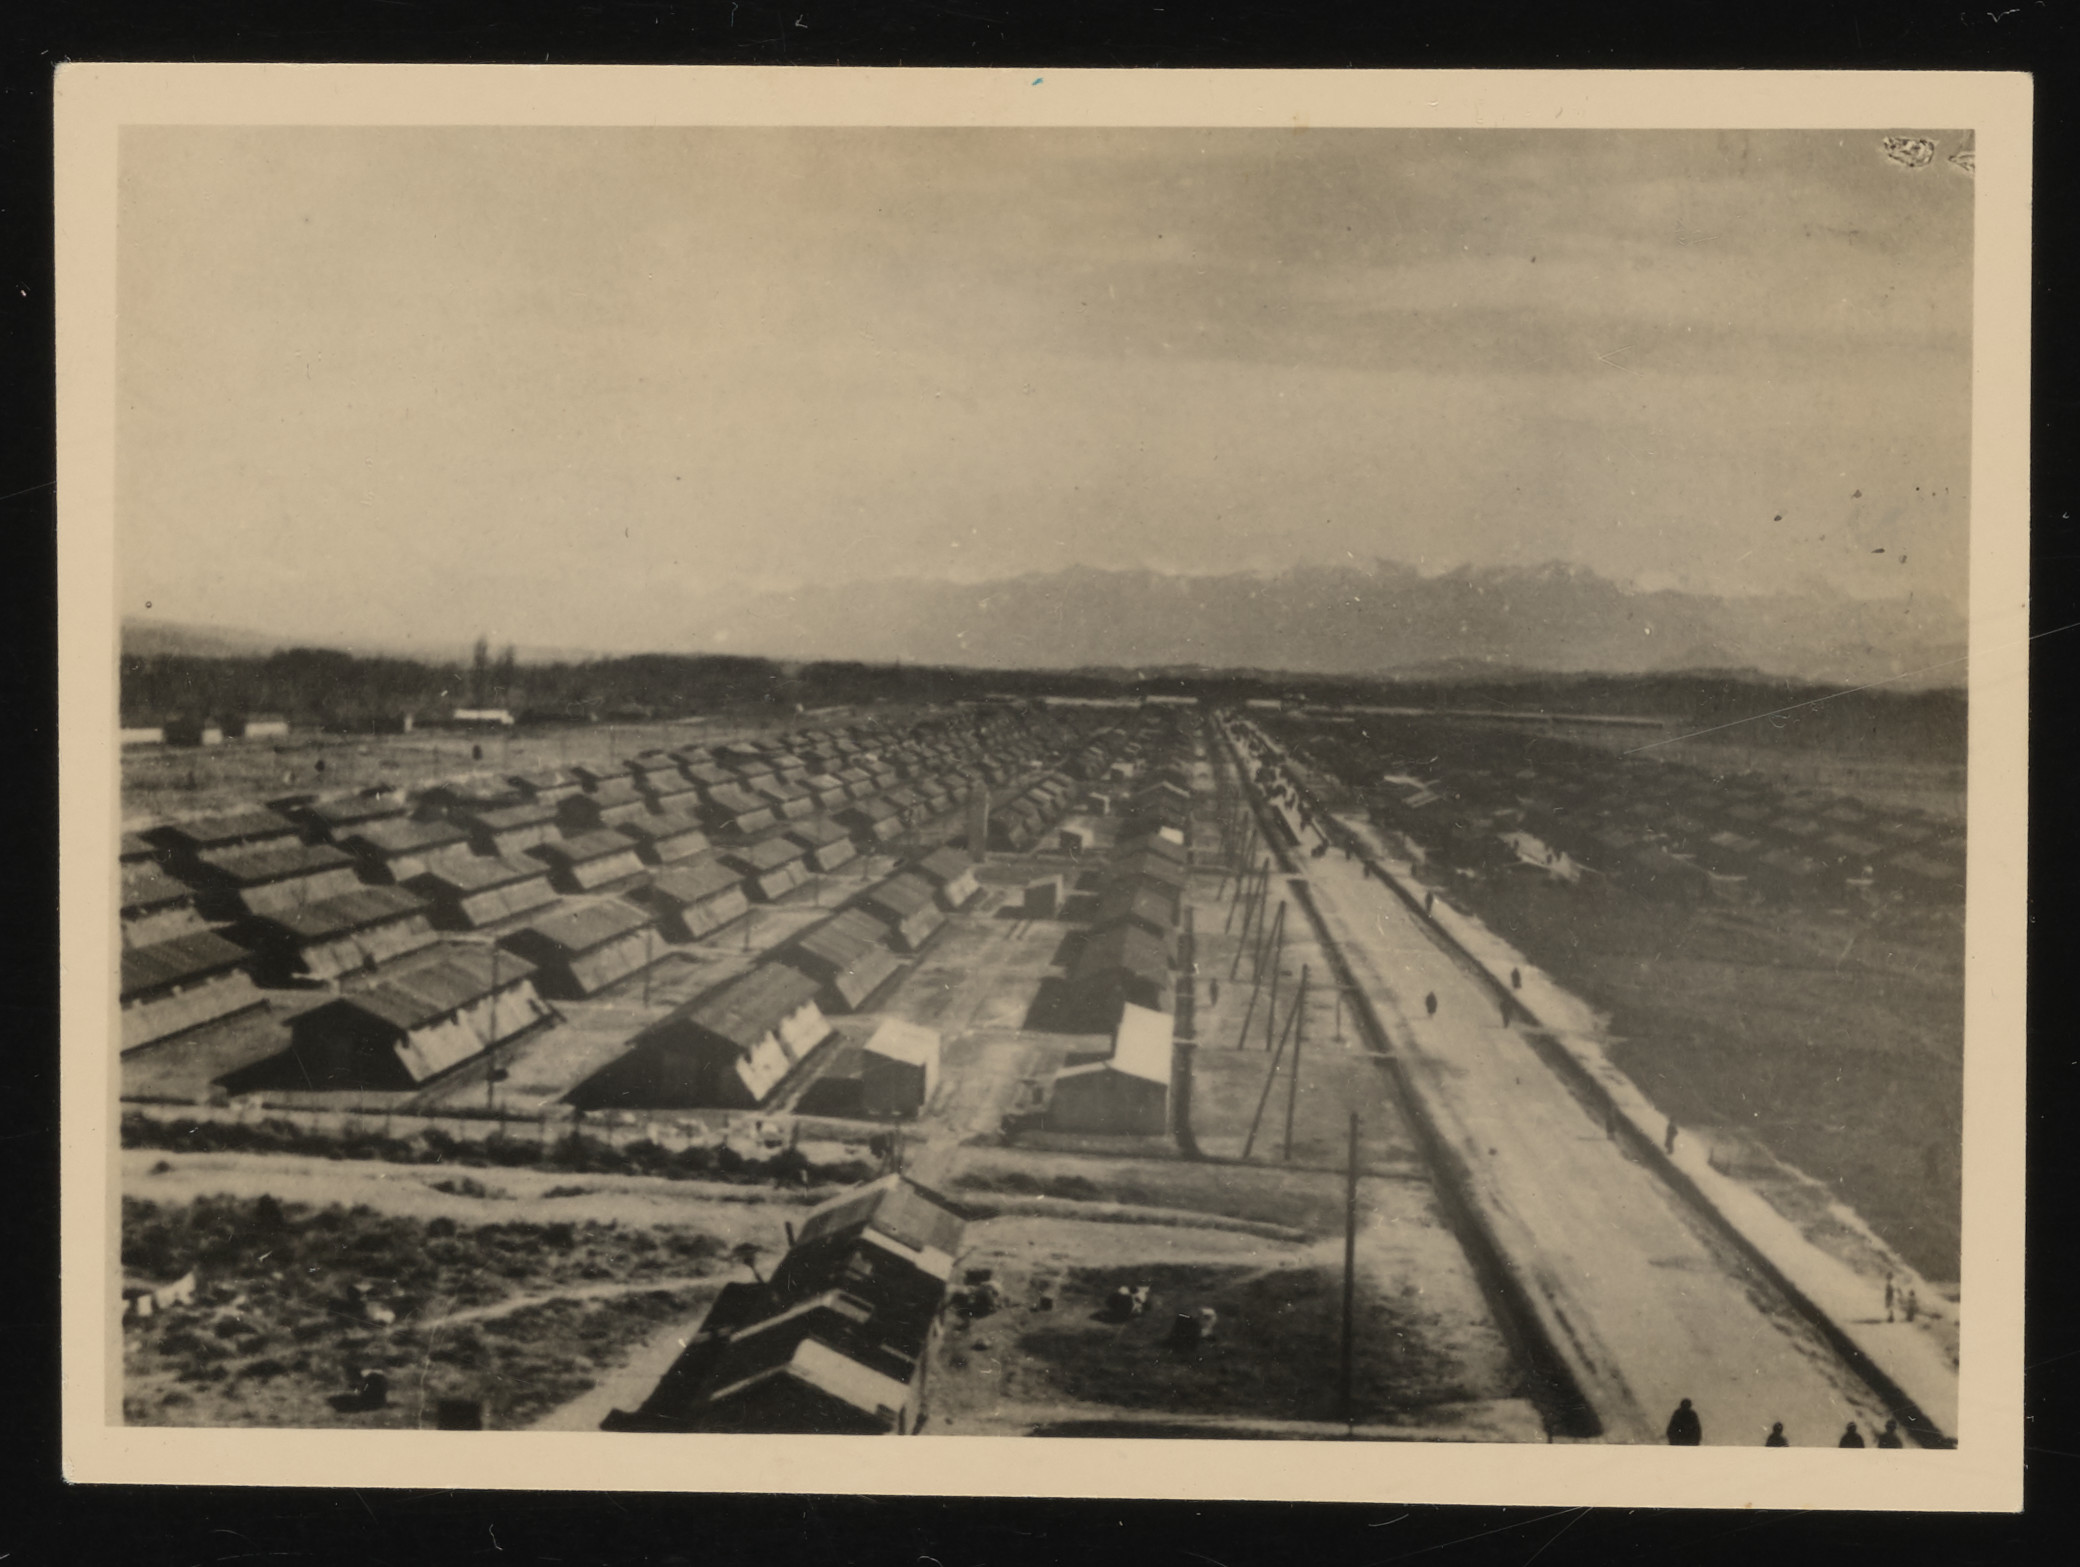 View of the Gurs transit camp.